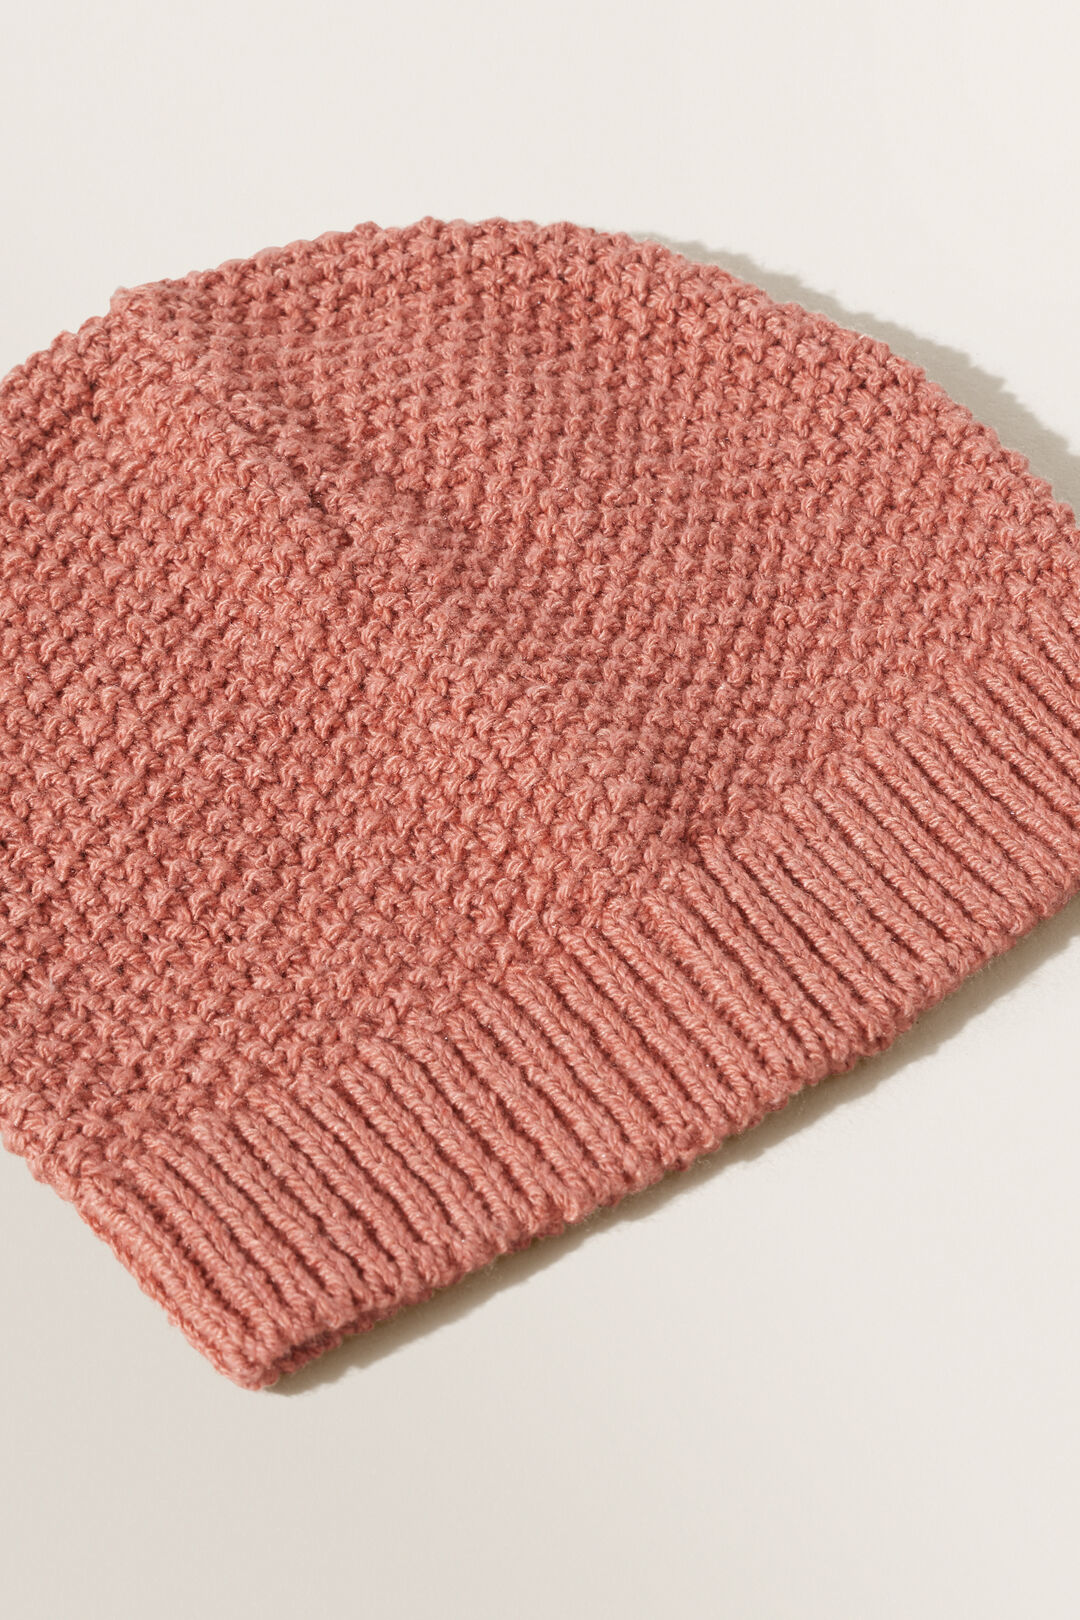 Textured Knit Beanie  FADED ROSE  hi-res